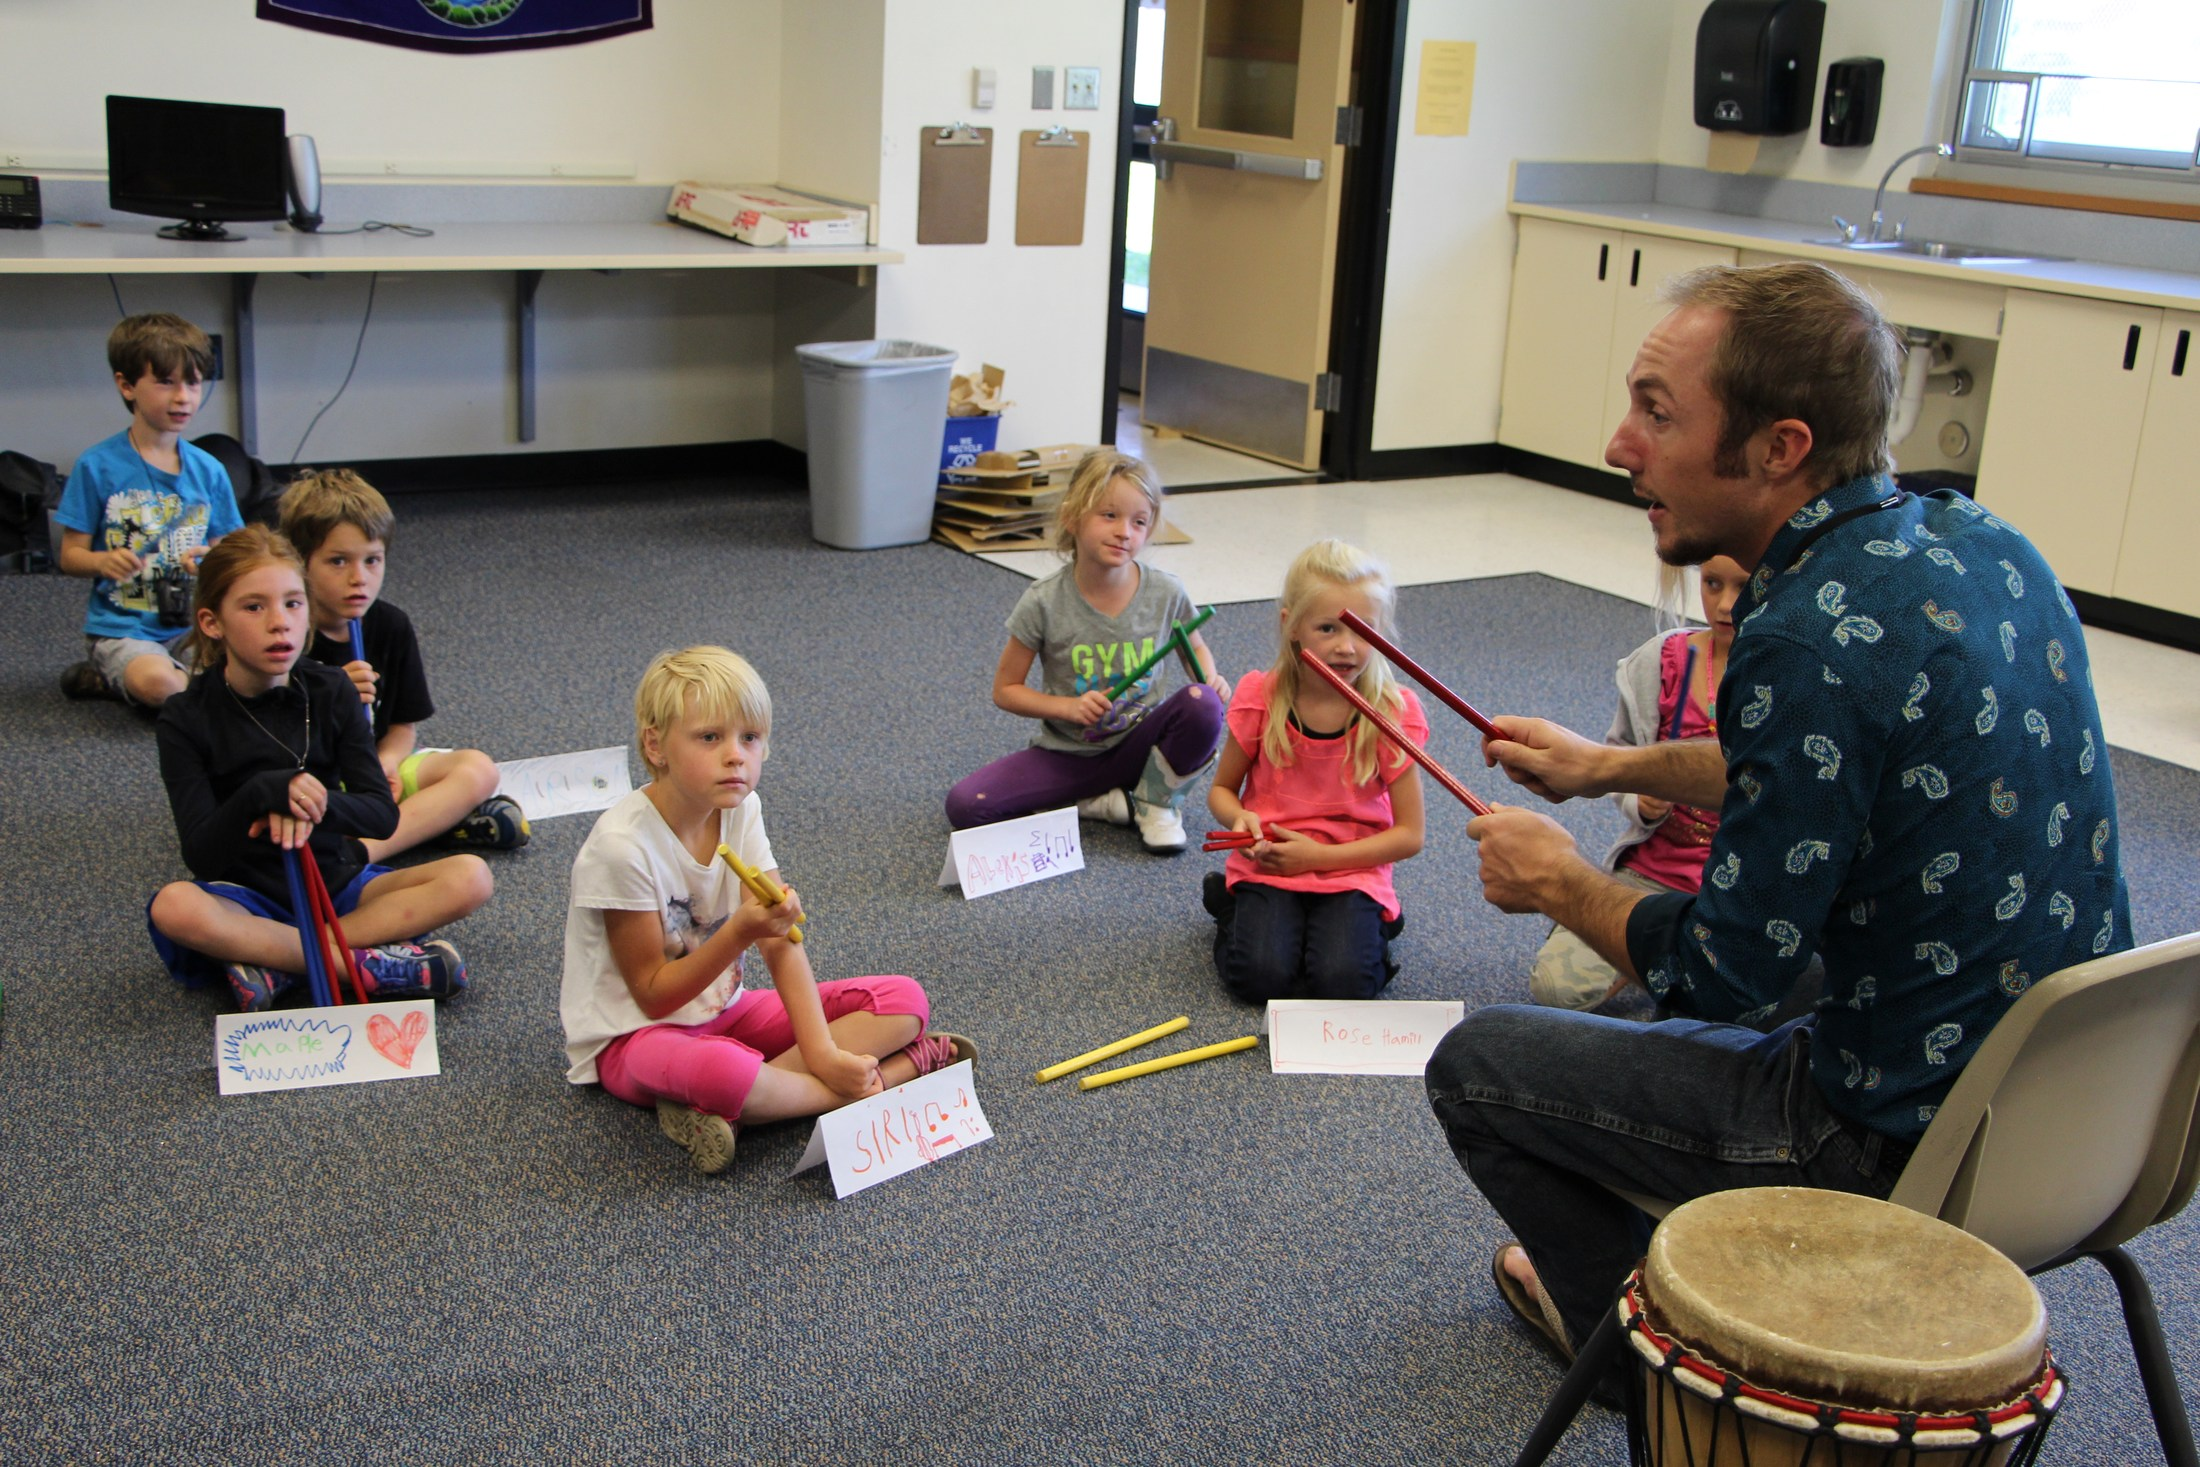 Students participate in music class at Shared School.